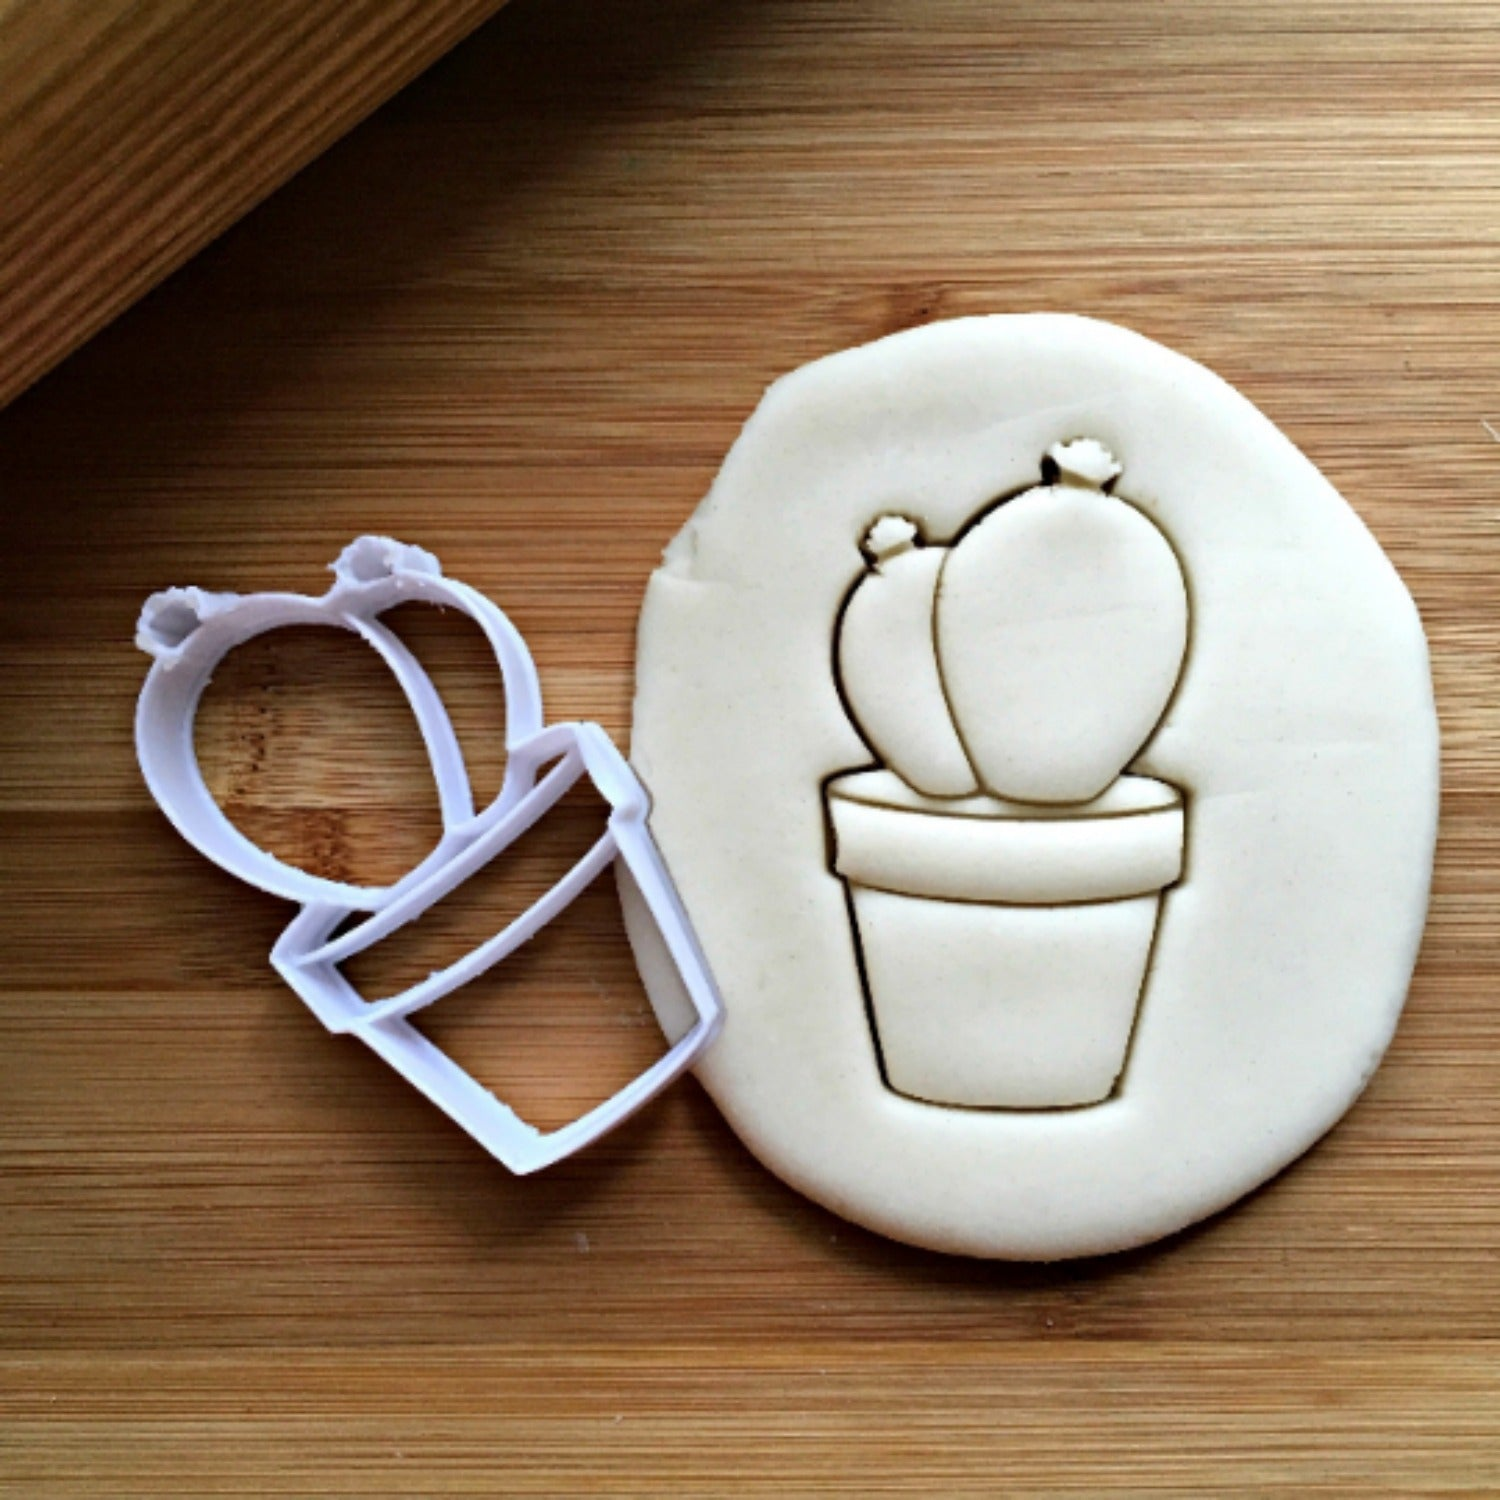 Double Cactus Cookie Cutter/Dishwasher Safe